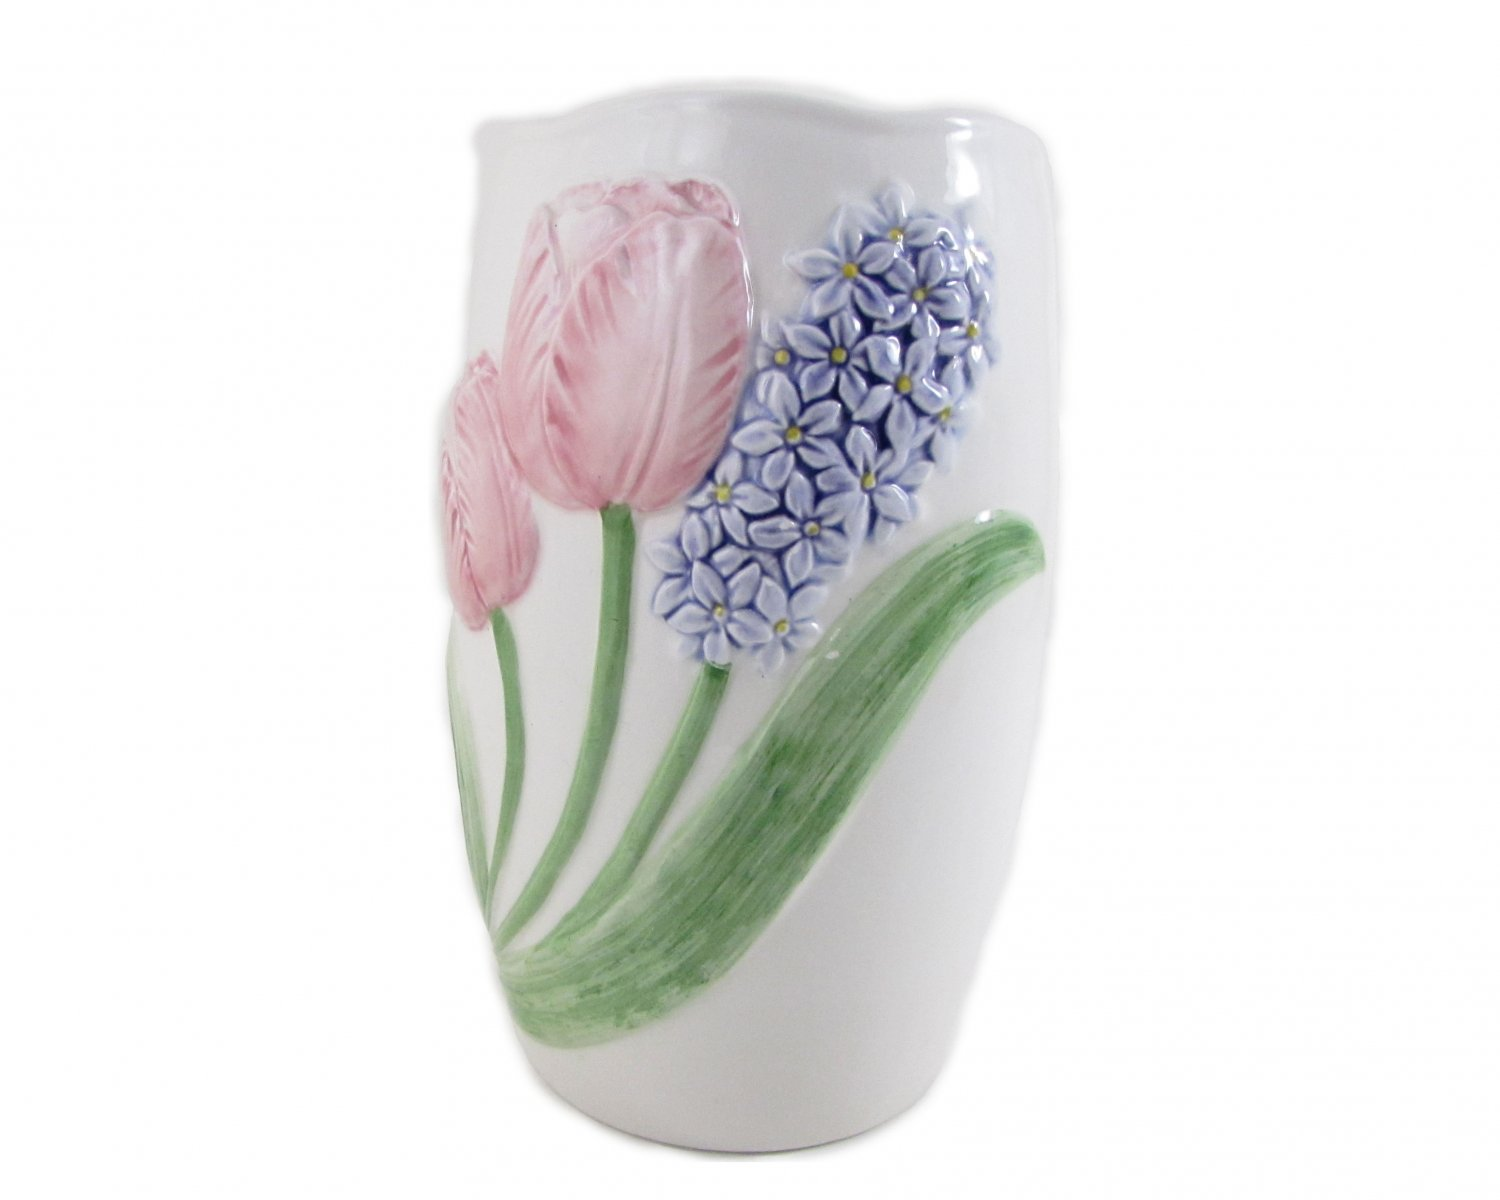 Hyacinth and Tulip Garden Ceramic Vase by  Mary Ann Baker